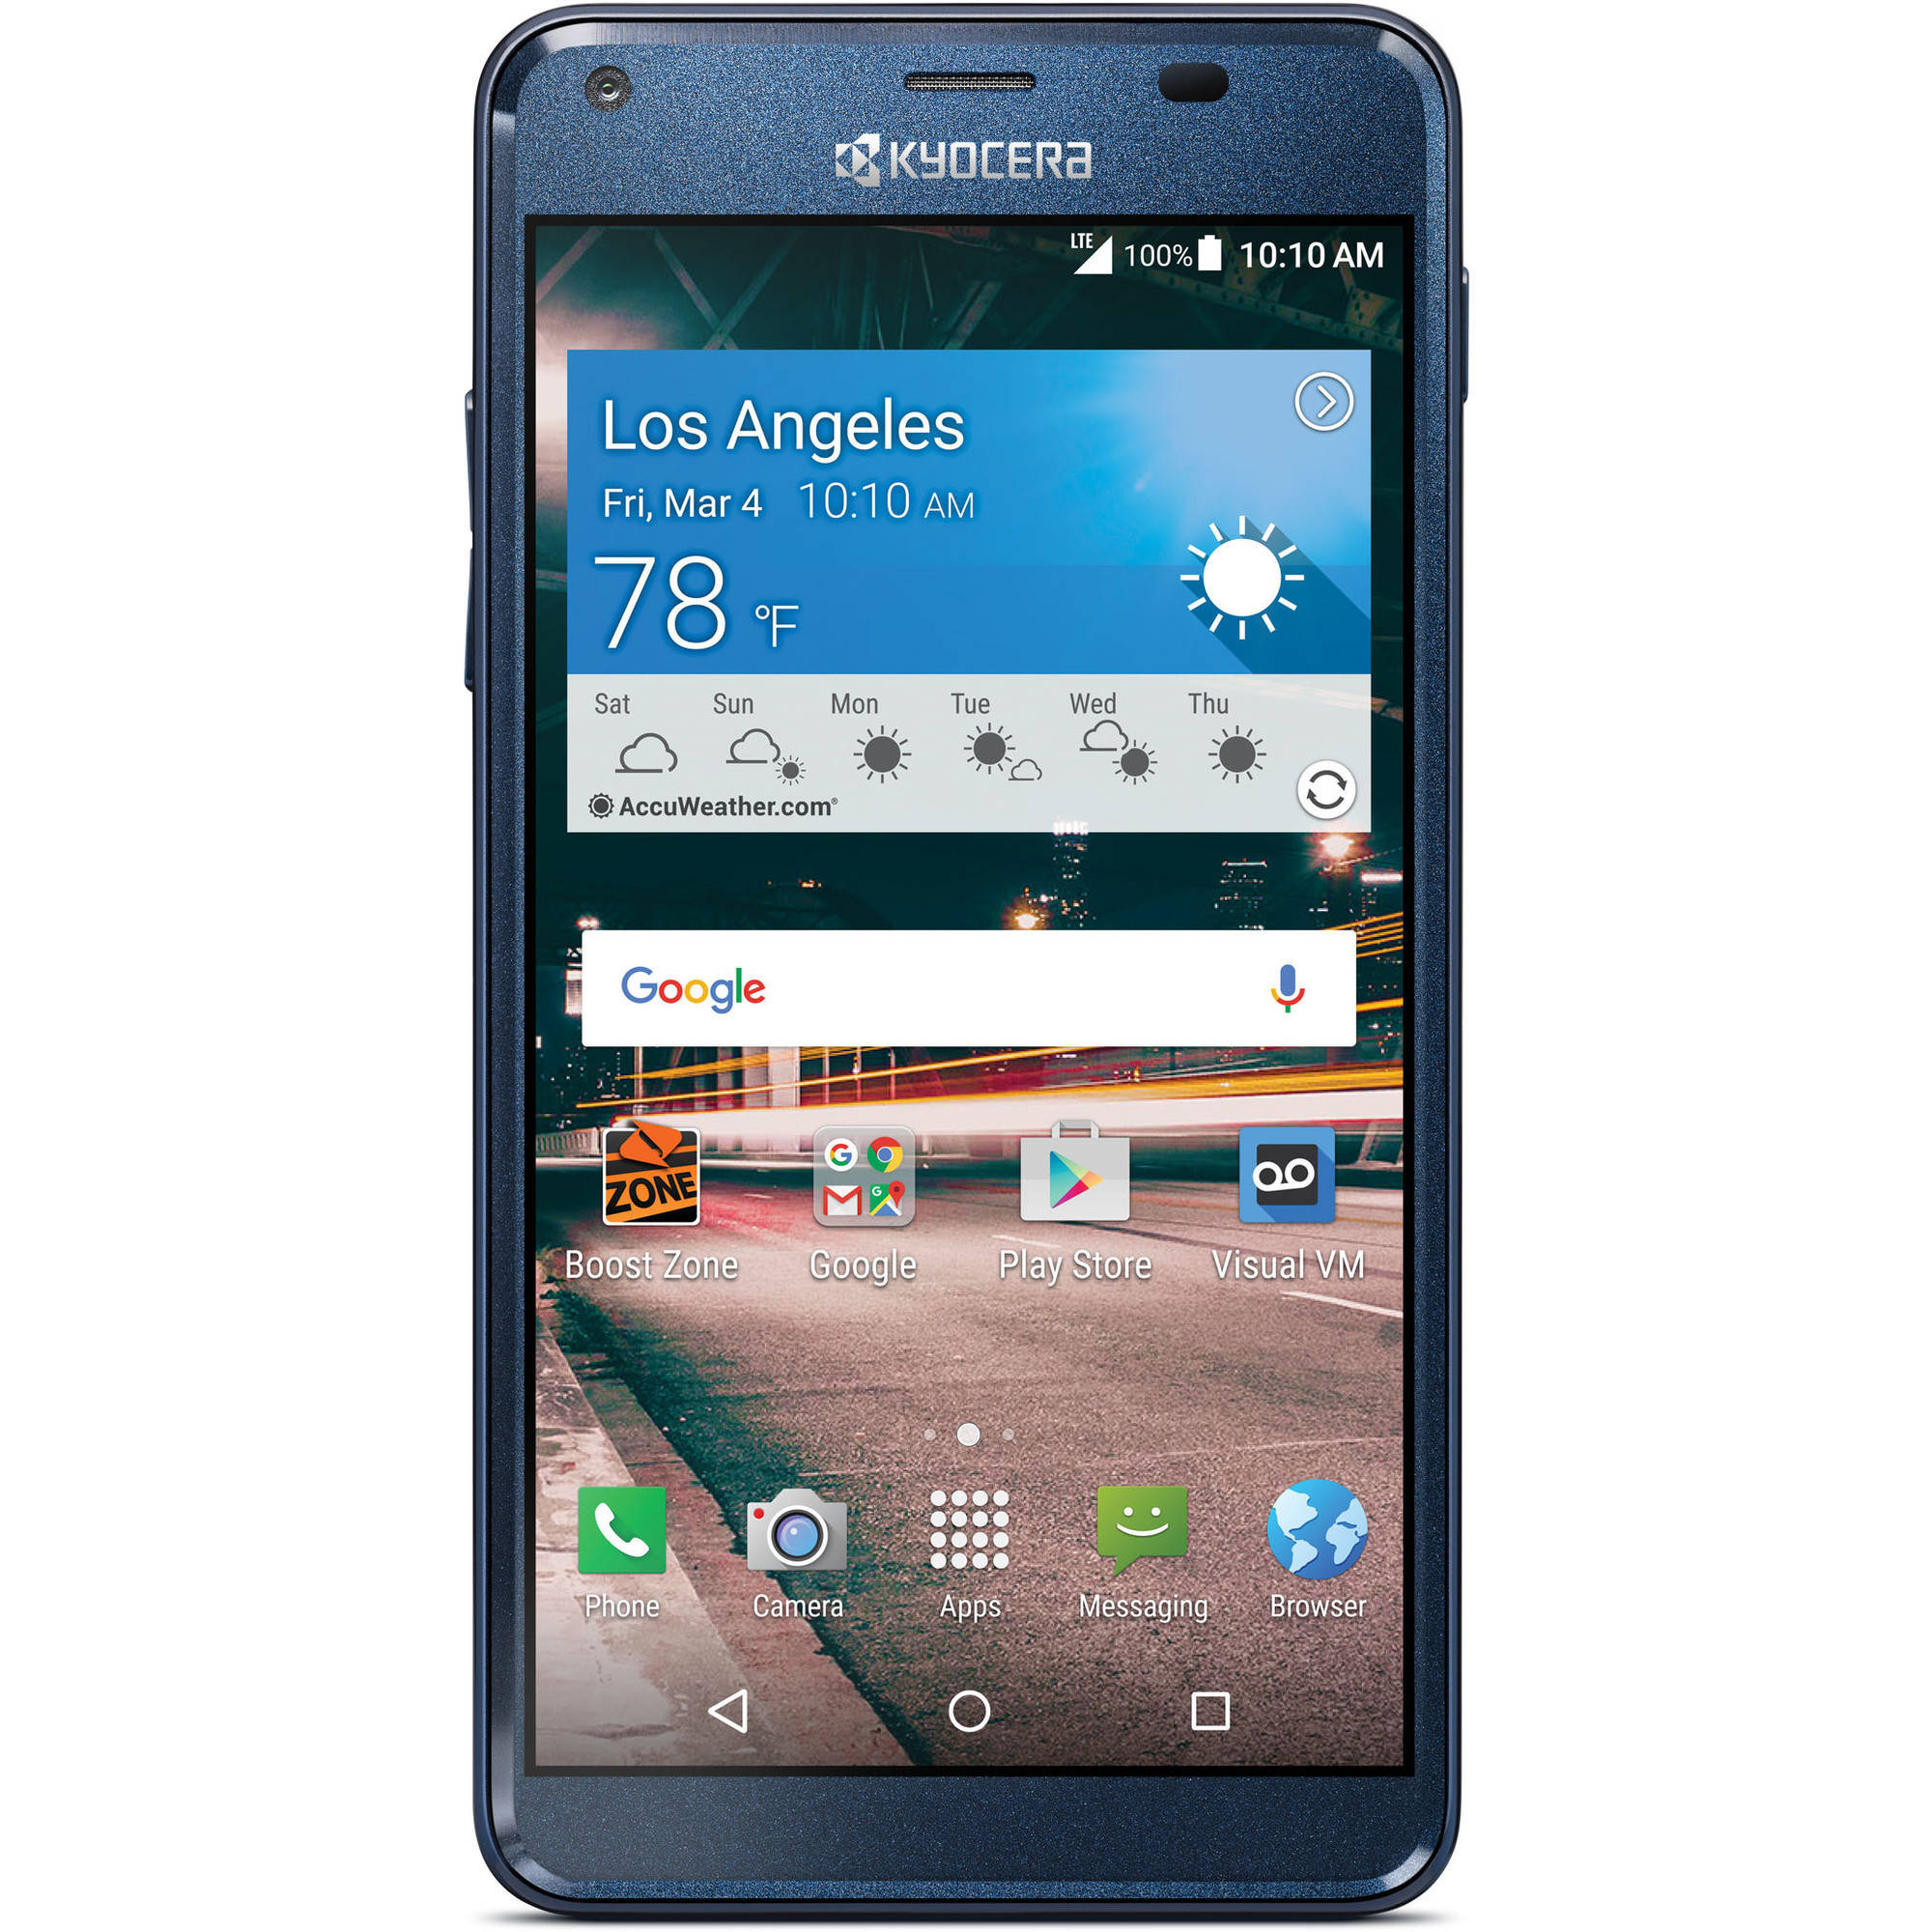 Phone Android Phones For Metro Pcs metro pcs phones boost kyocera reach smartphone